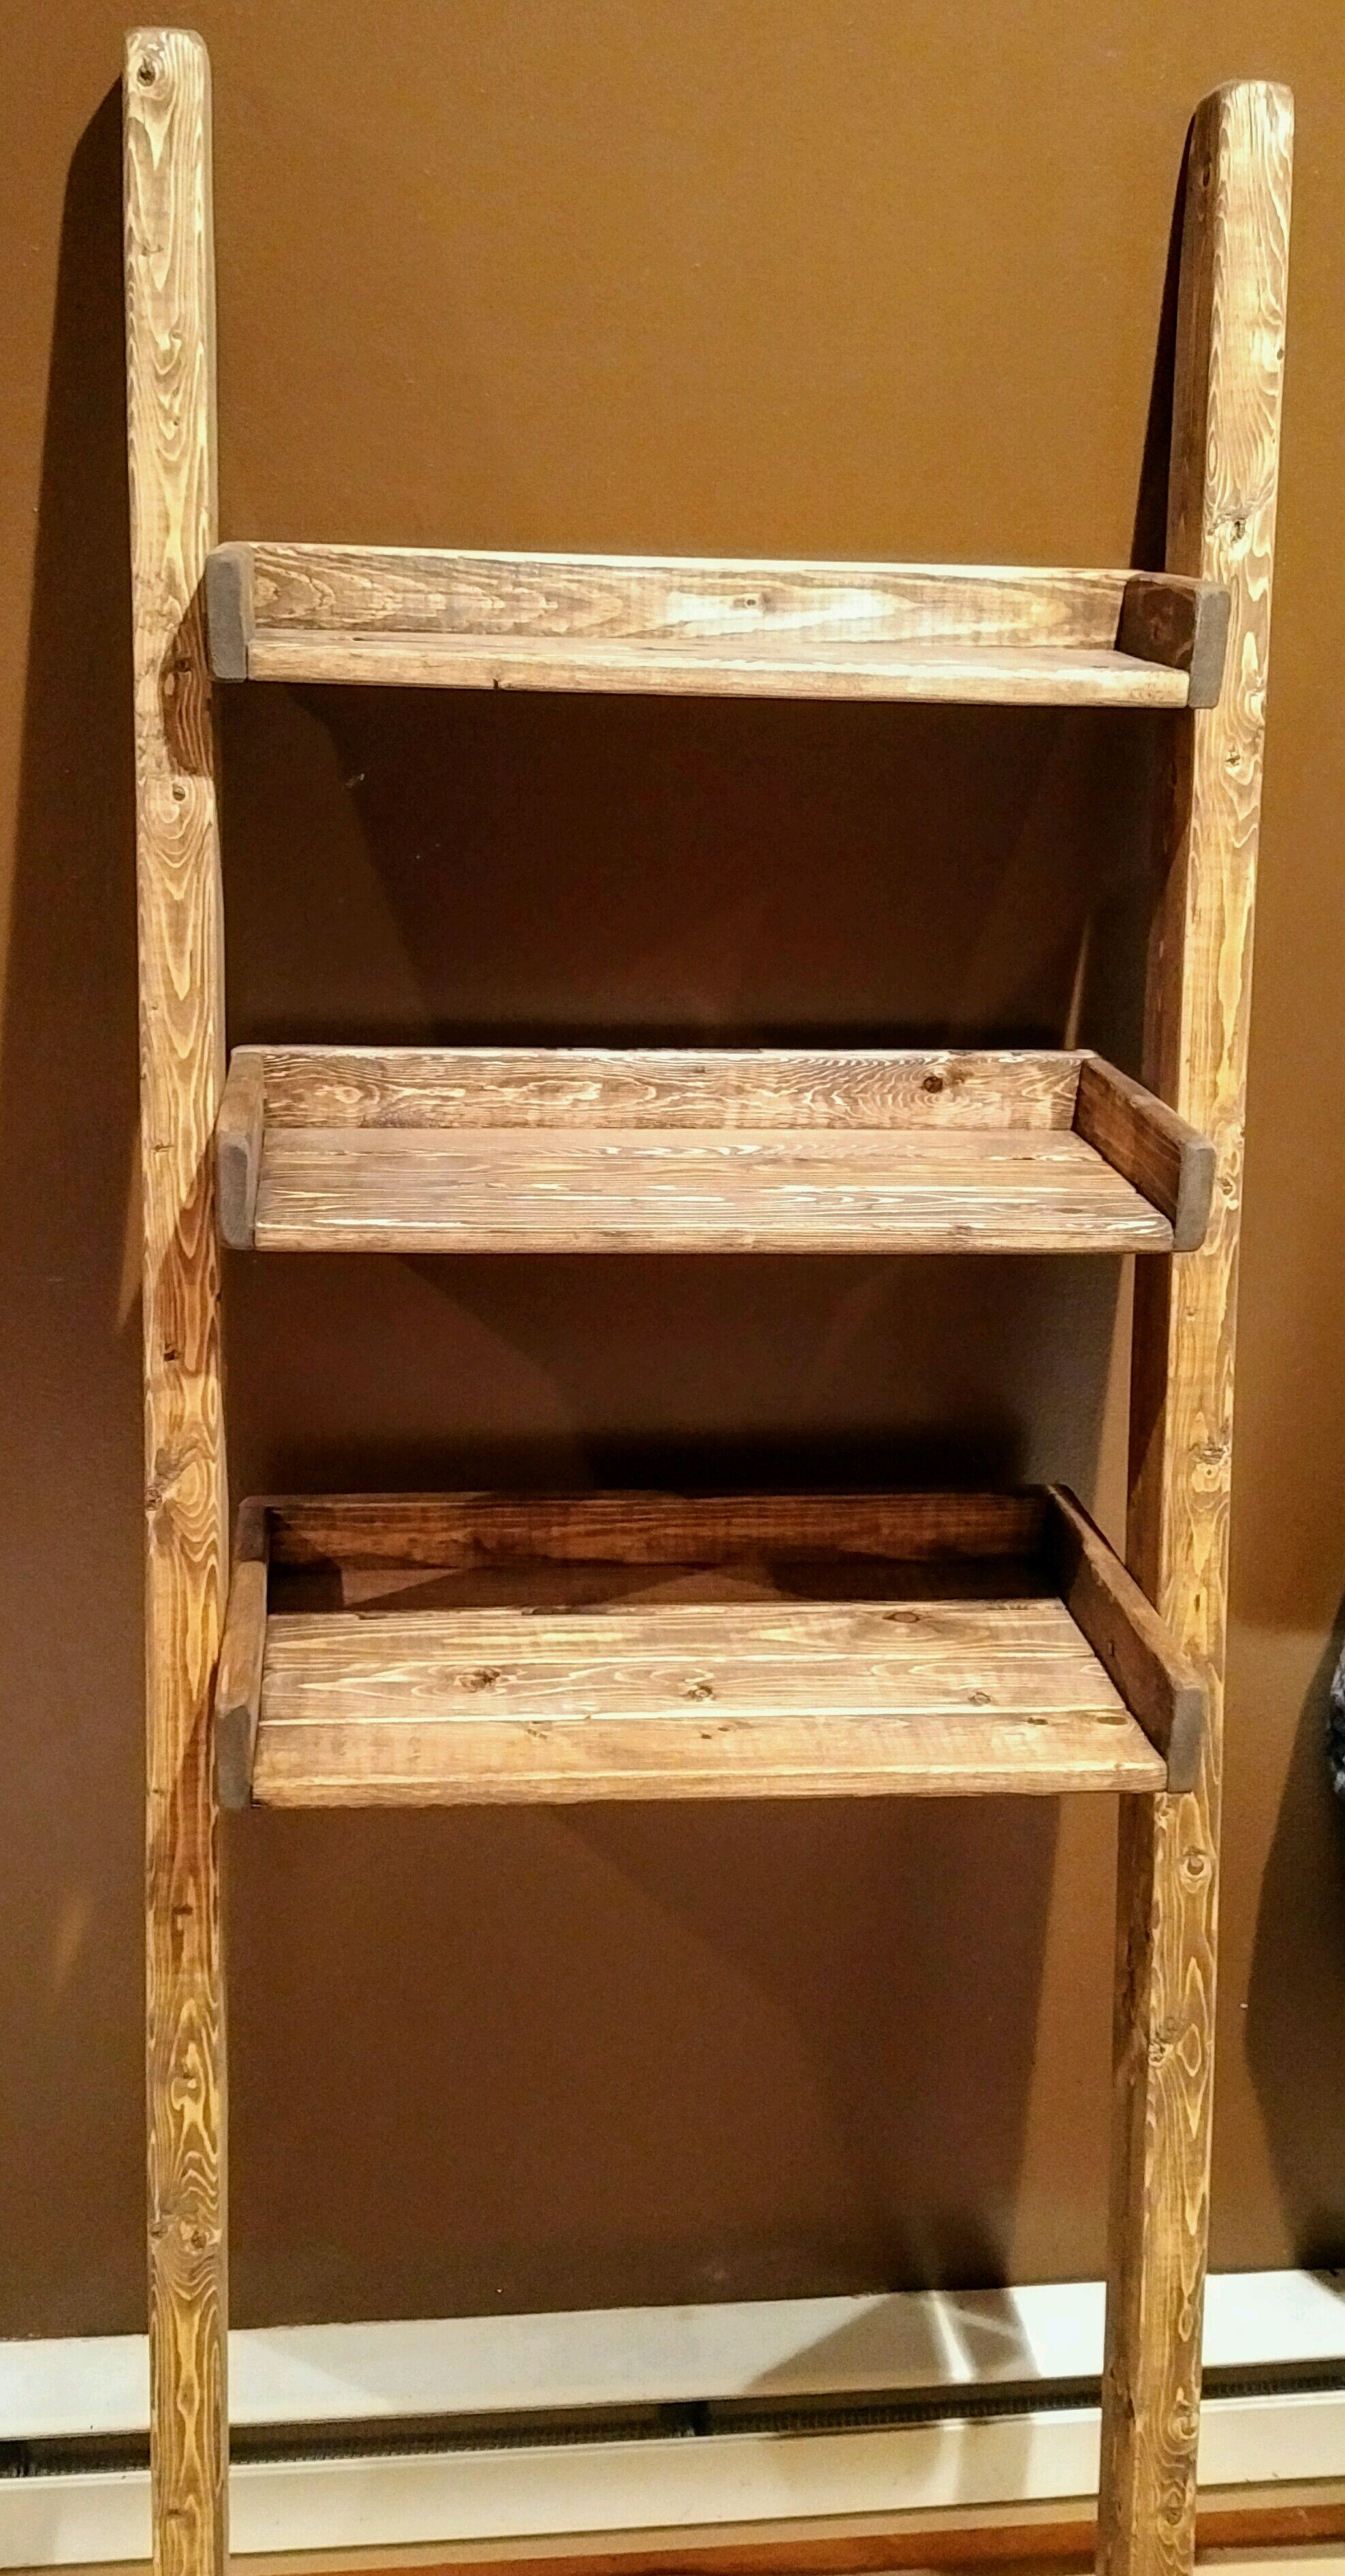 leaning shelving metal ikea stunning black exceptional size bookcases compell unit burkesville four uncategorized full shining bookshelf farmhouse cherry fantastic terrific of solid bookcase imposing shelf ladder wood walmart inch